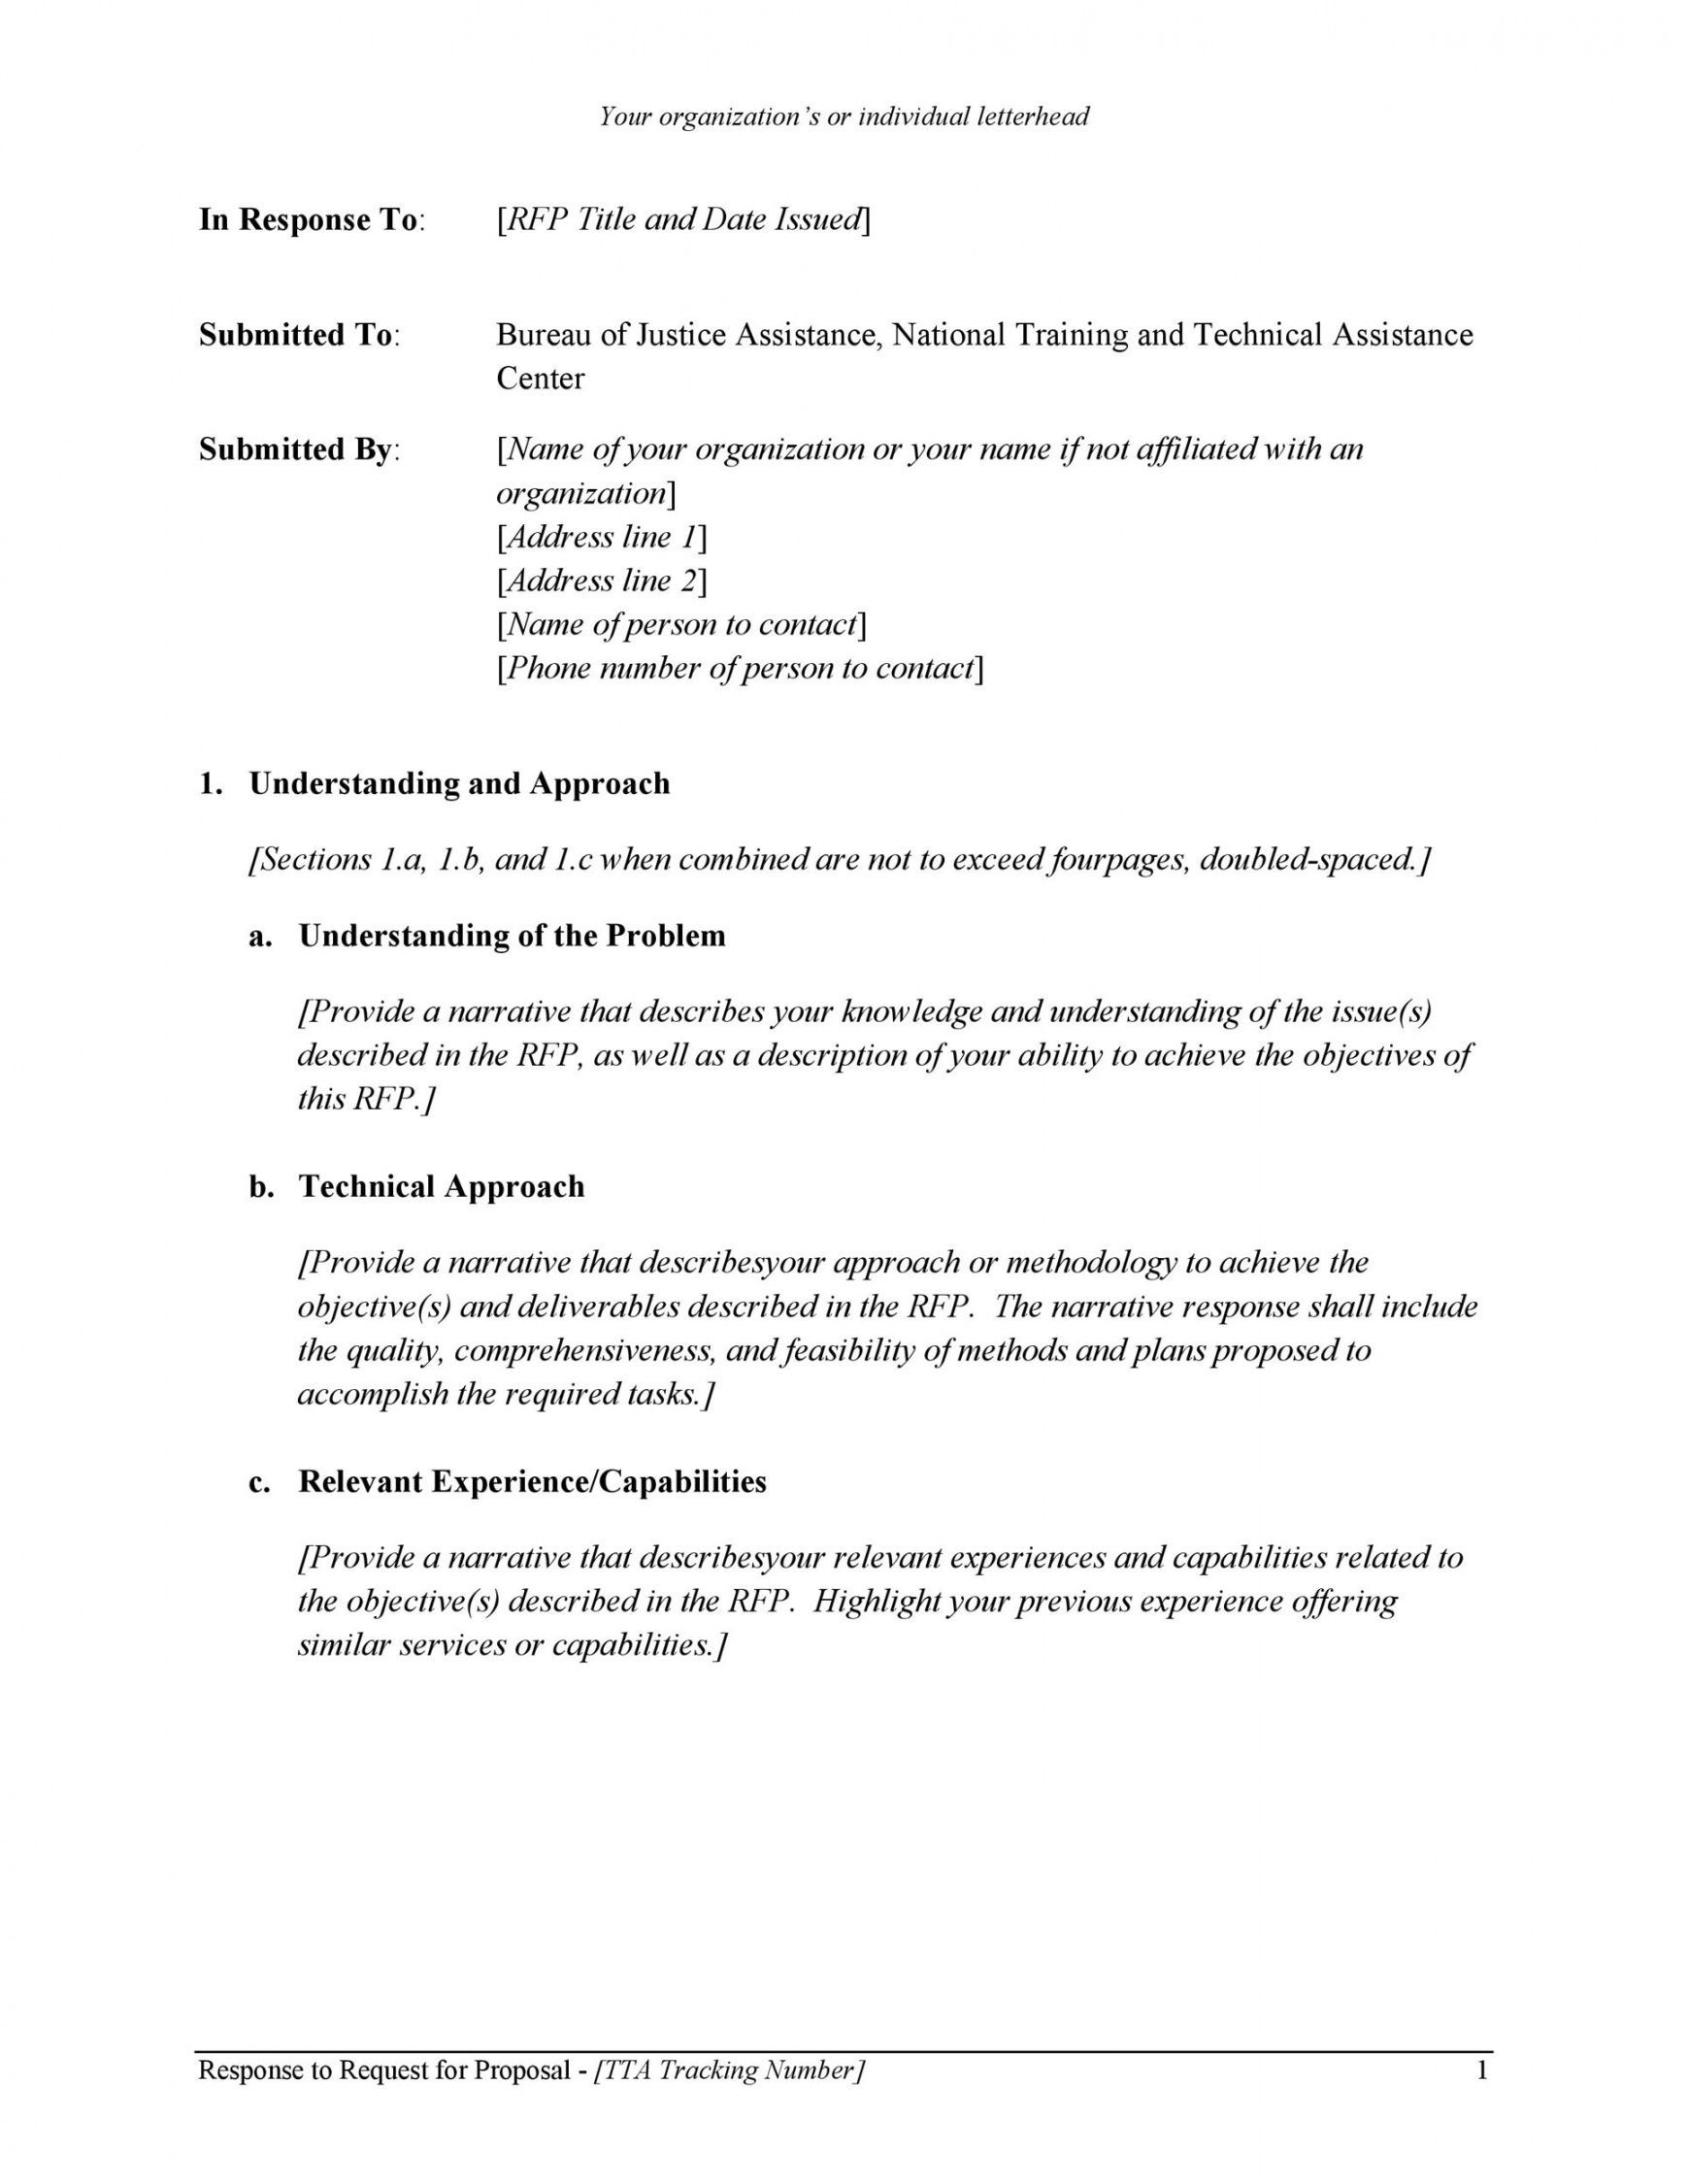 Request For Bid Proposal Template In 2021 Proposal Templates Request For Proposal Business Proposal Template